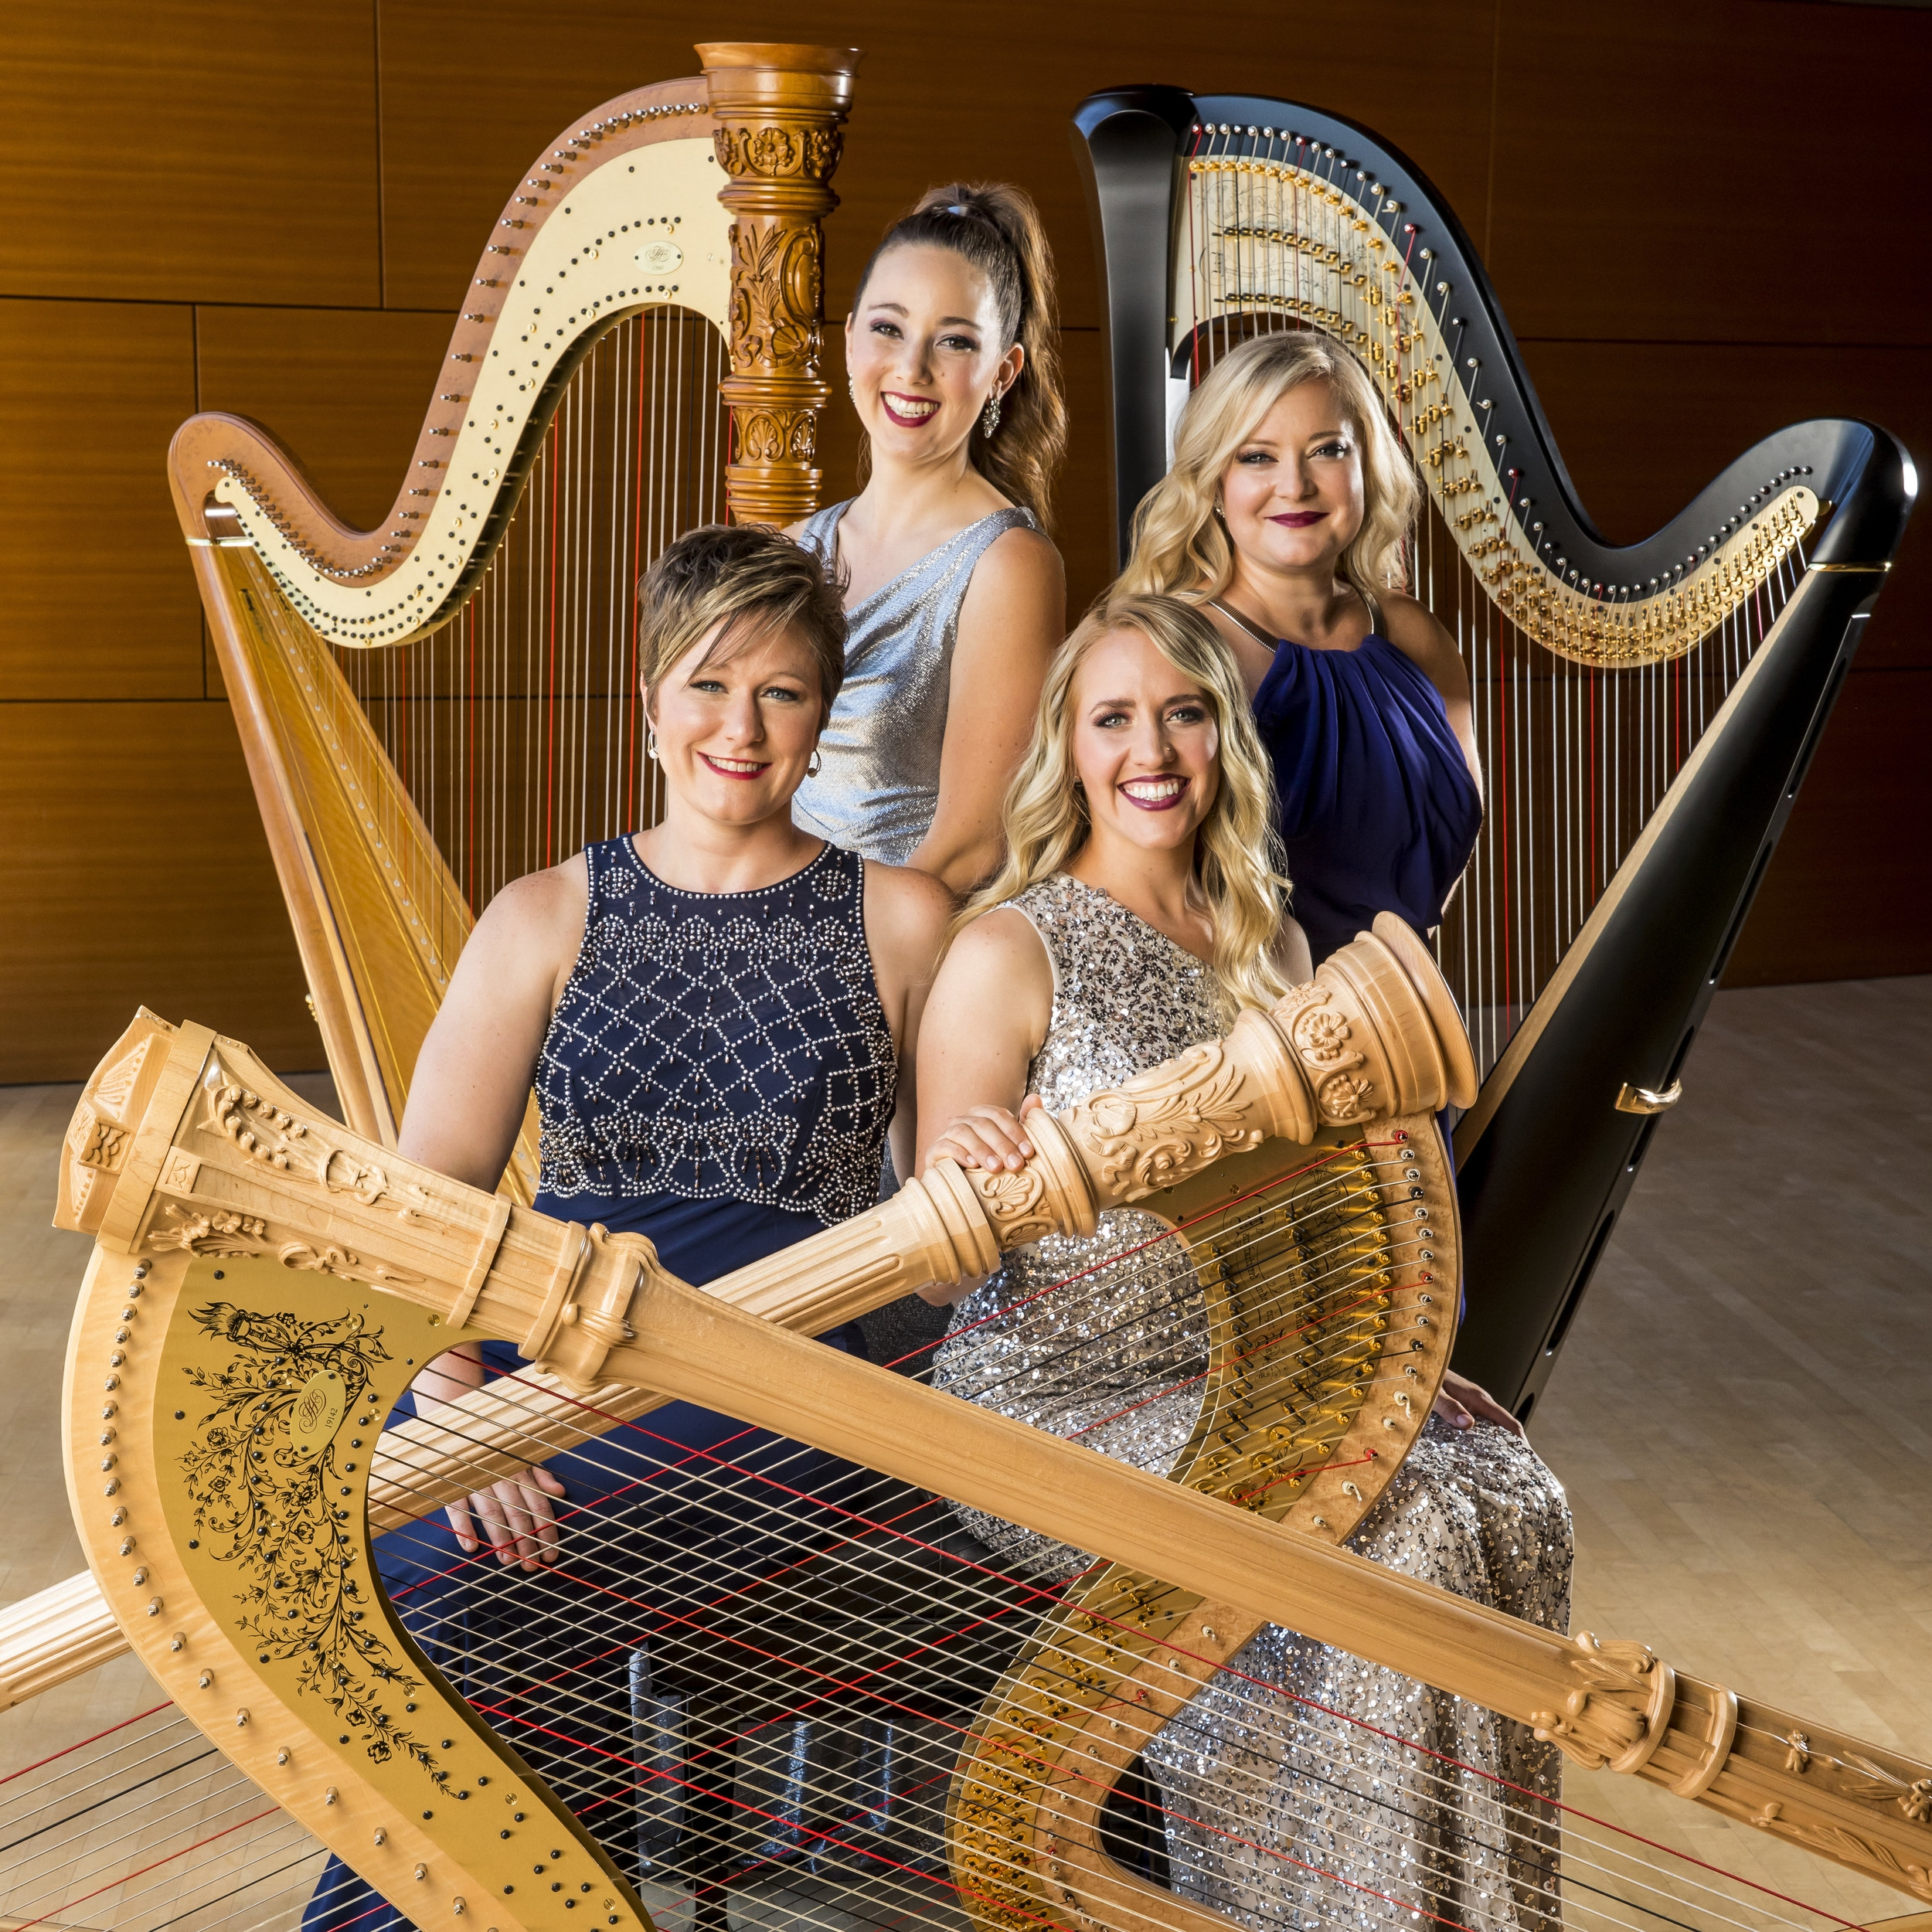 Photo: AHS 2019 Summer Institute Presenters, Chicago Harp Quartet